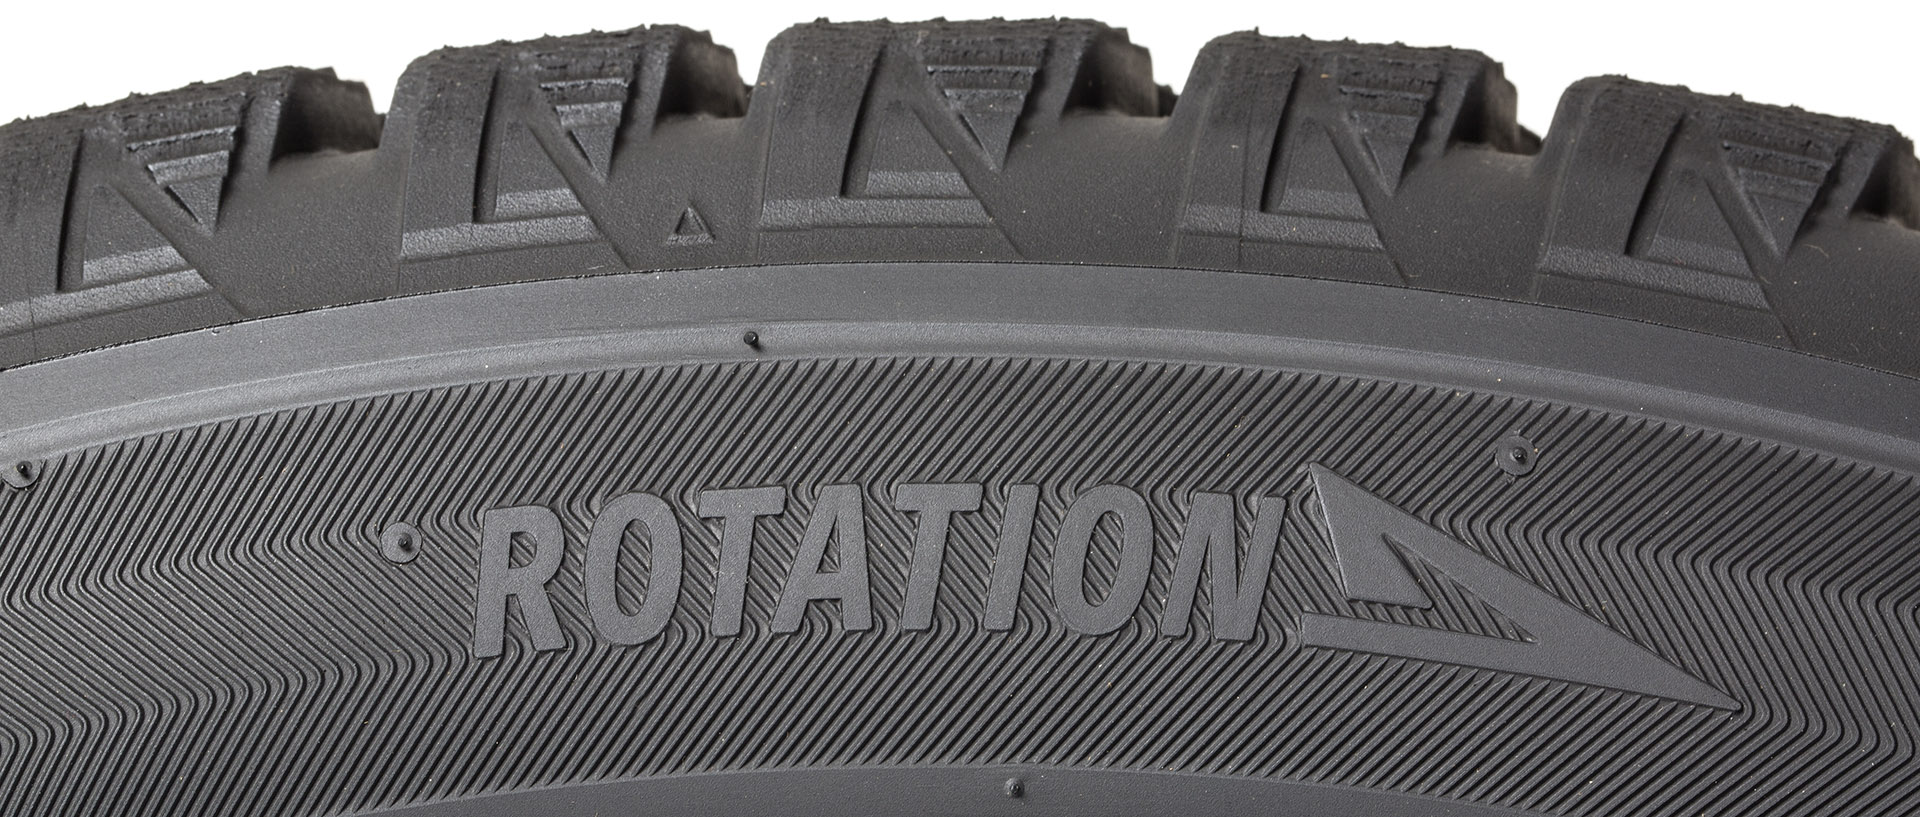 Automated Tire Tread Depth Scanners Gain Traction